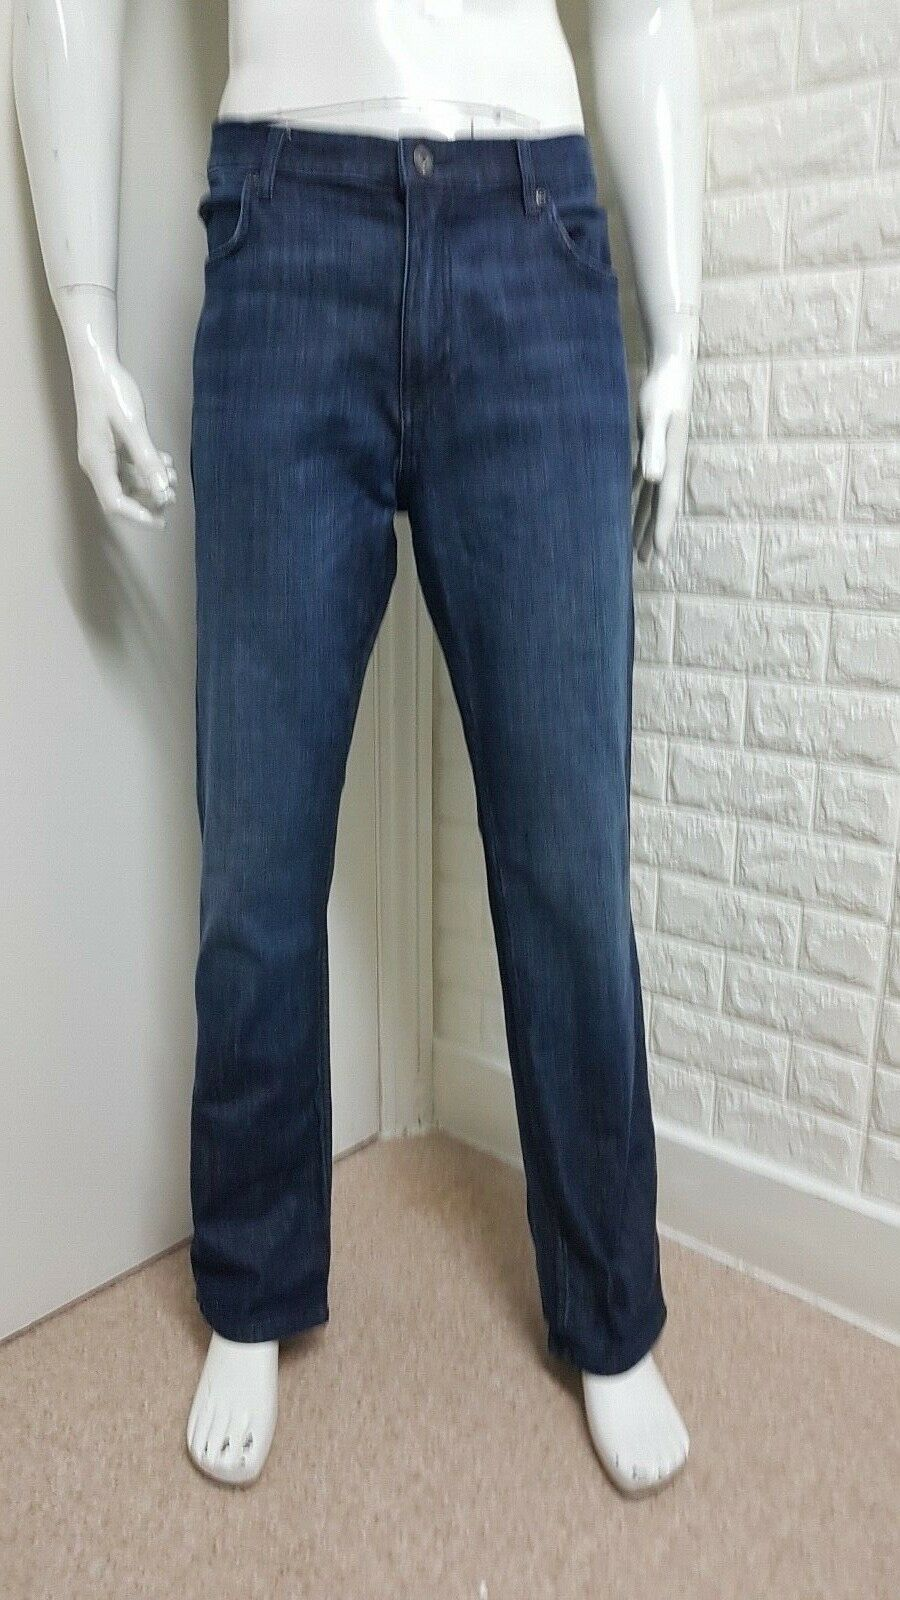 PIERRE CARDIN DENIM WEAR JEAN MEN'S AMAZING JEANS size  38 32